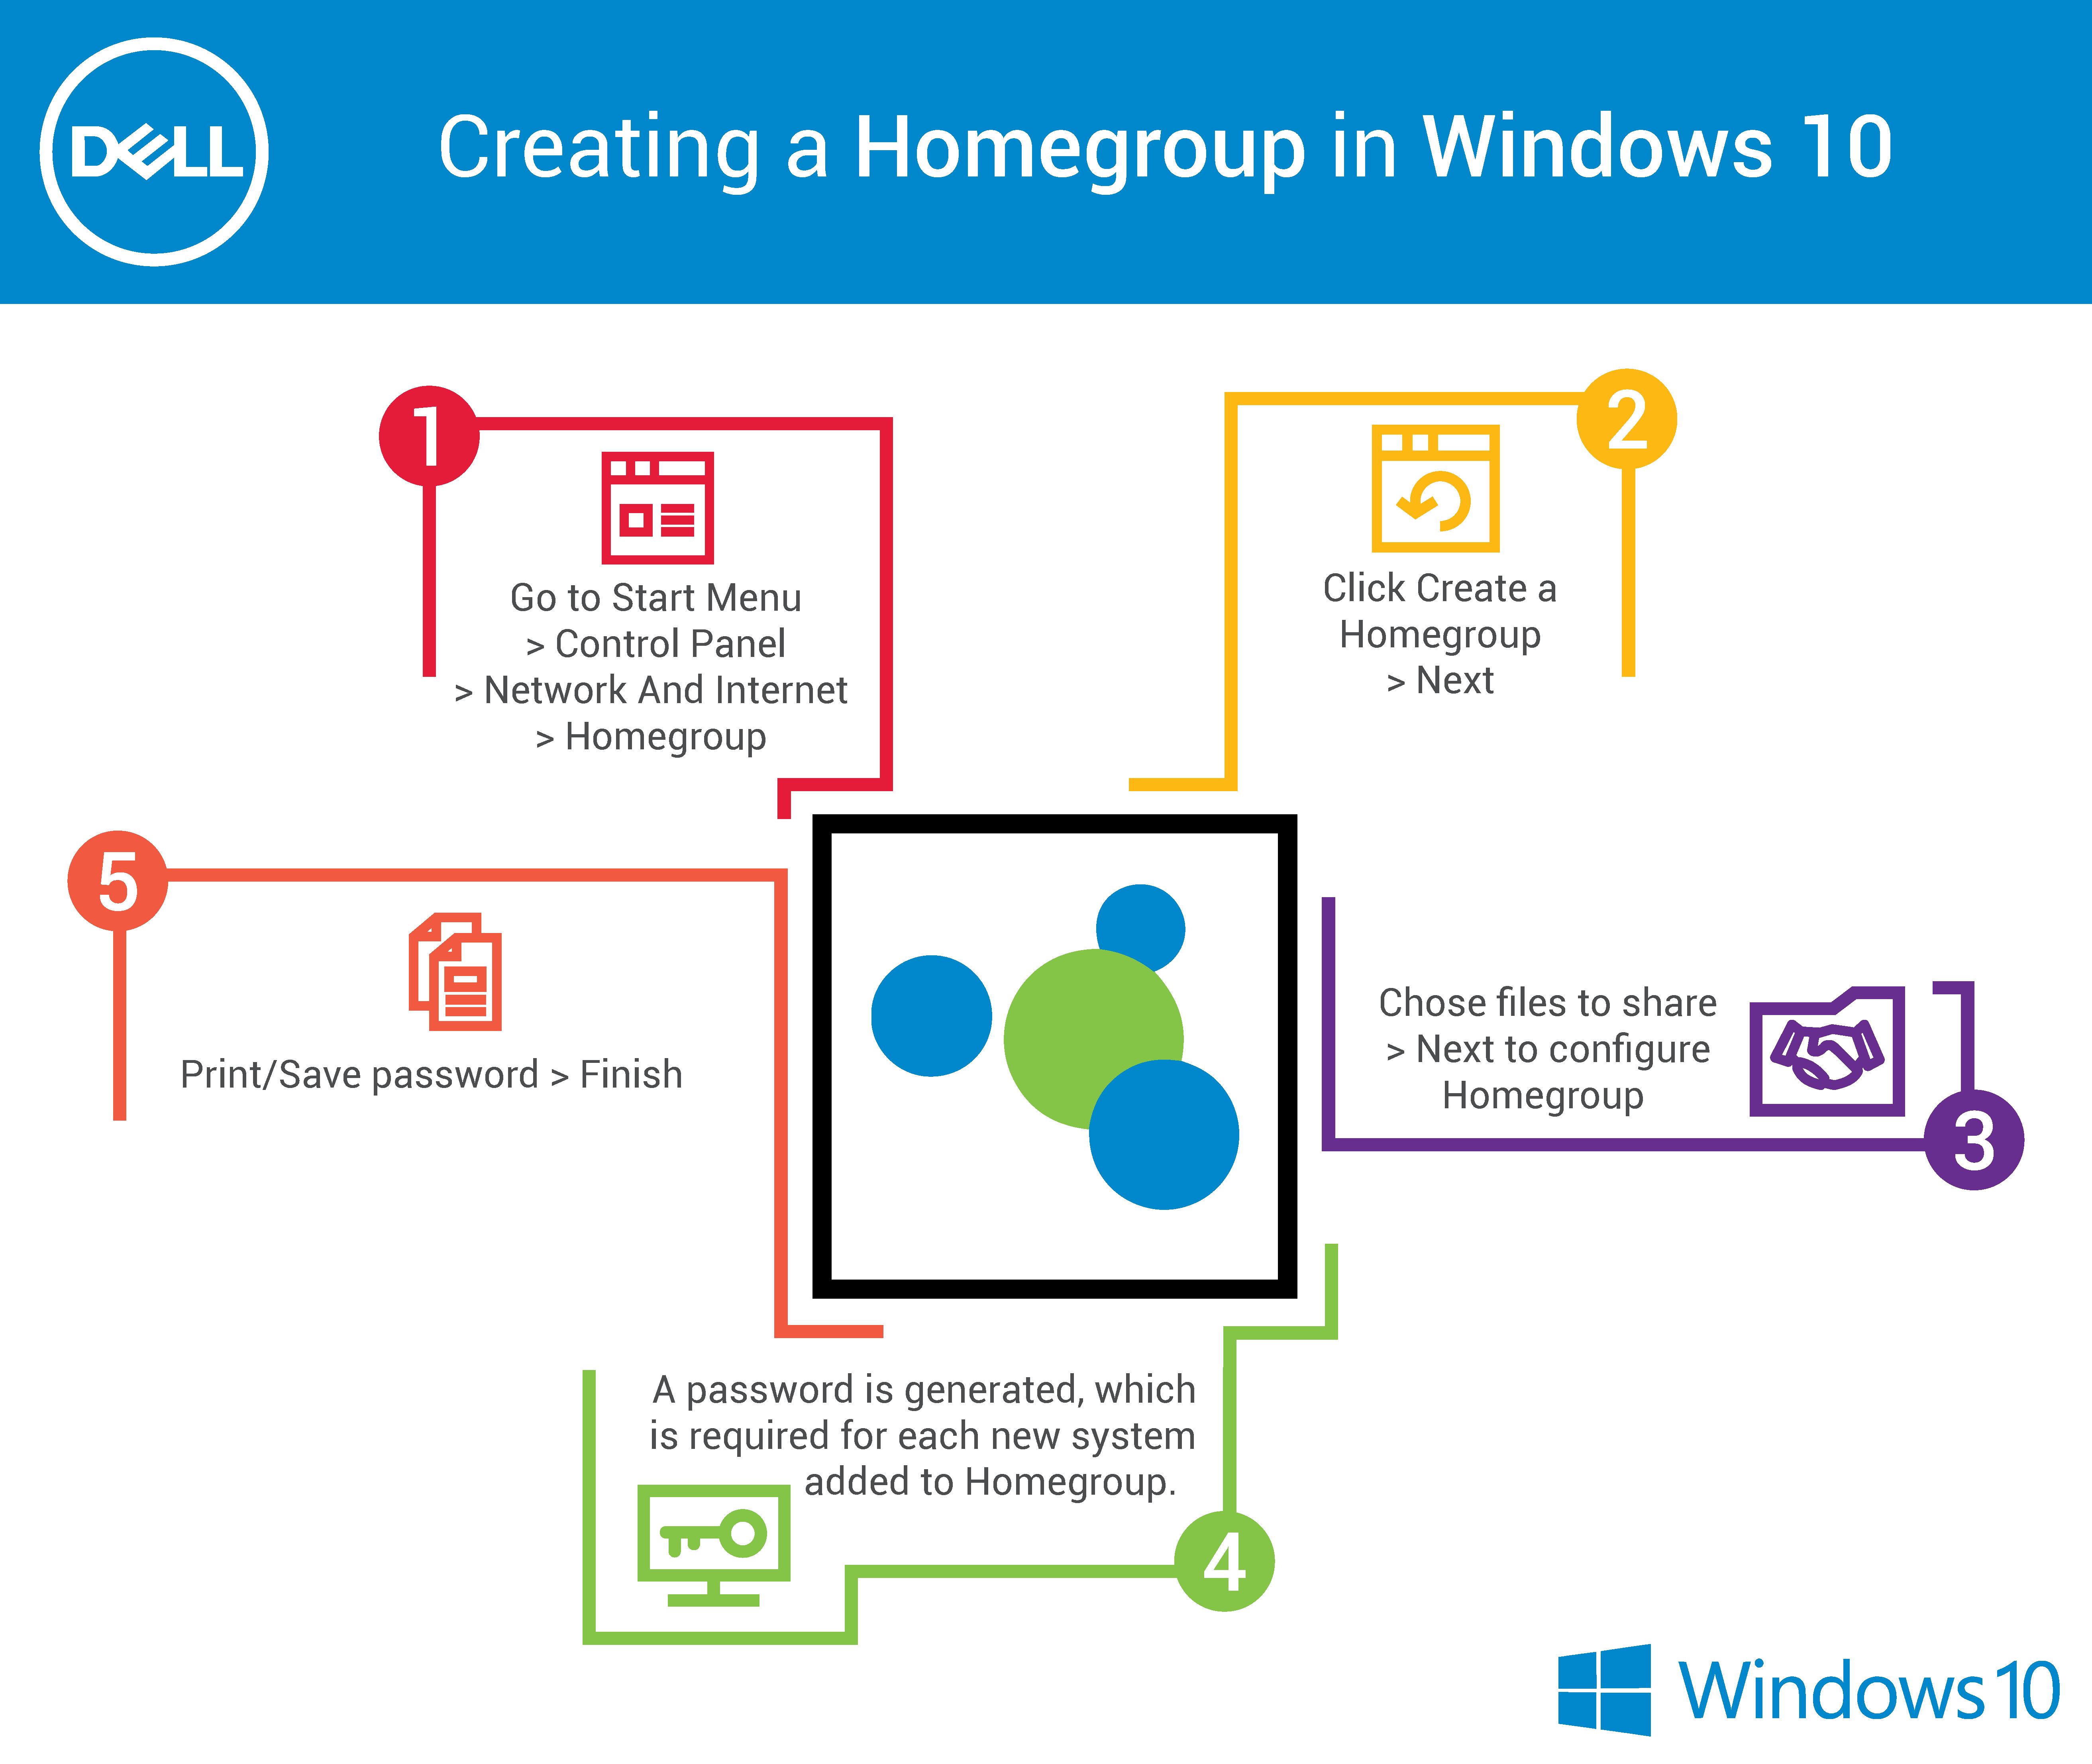 Know about creating Homegroups in #Windows10 | Dell Cares